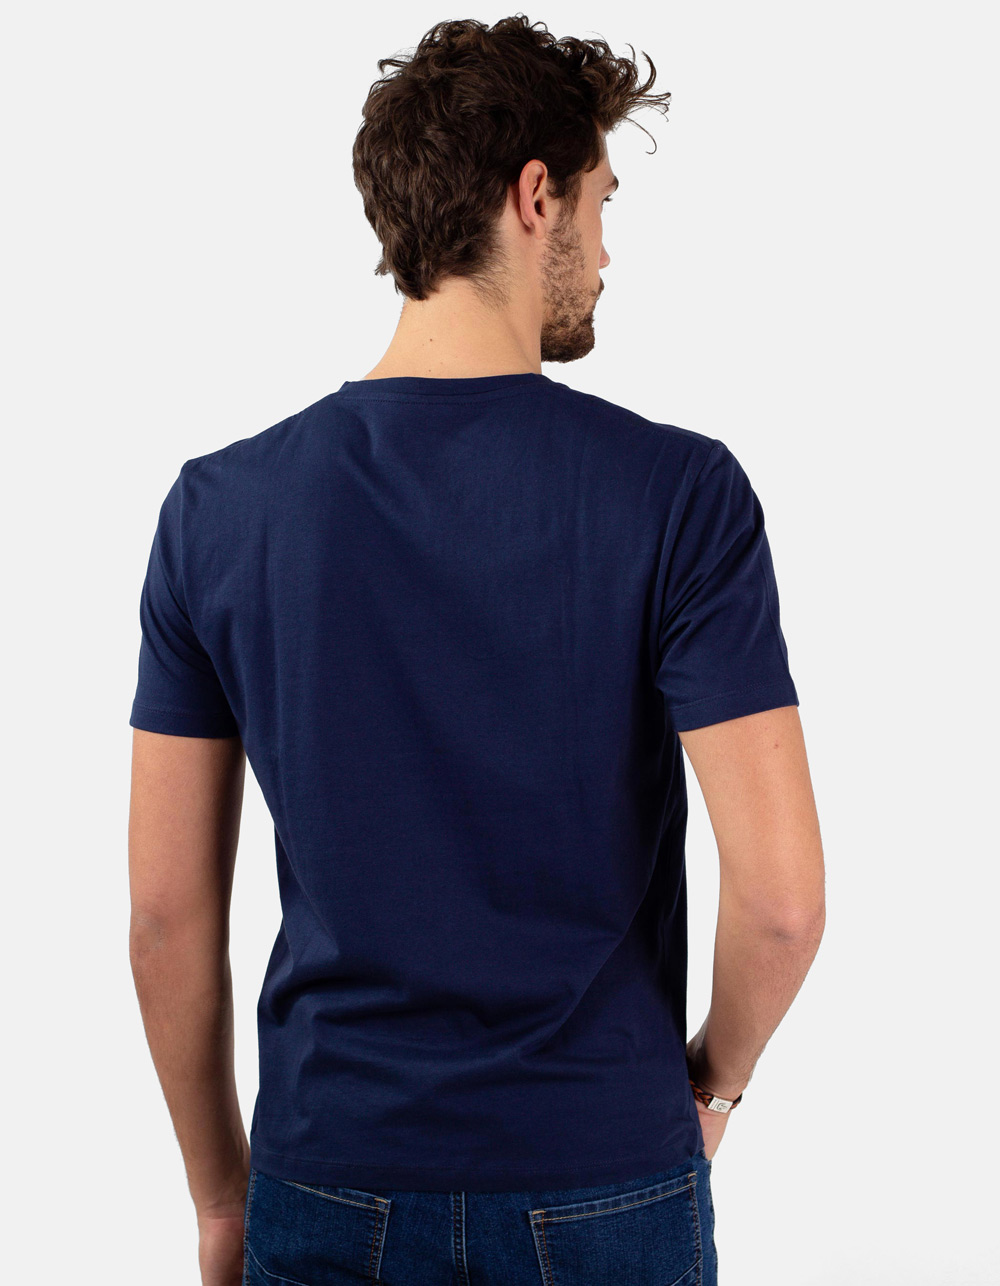 Navy round collar t-shirt - Backside